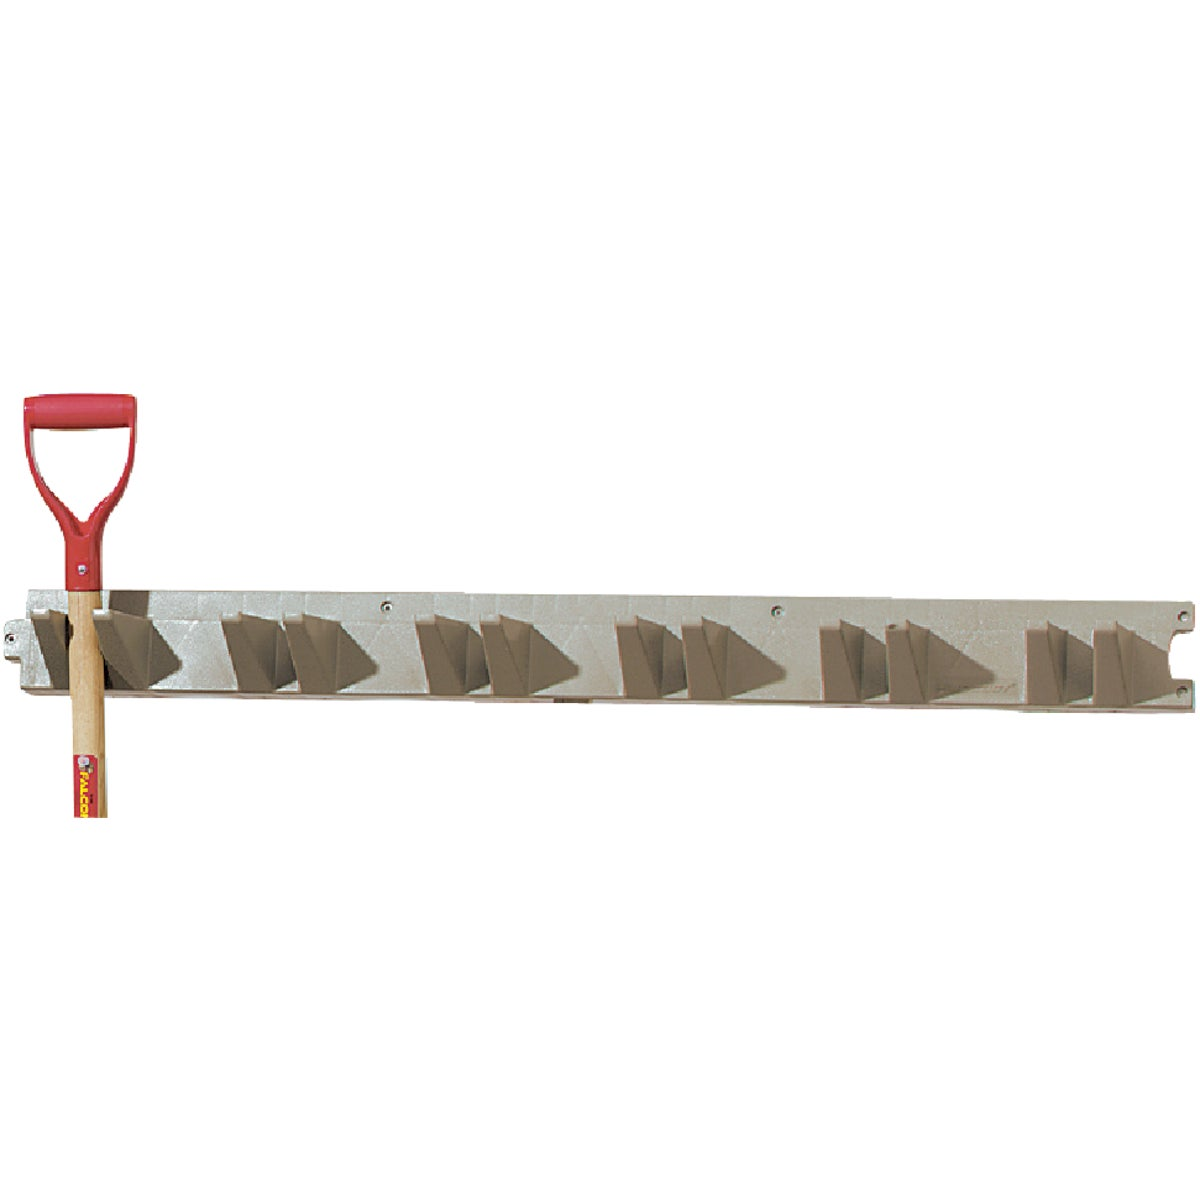 4' TOOL HANGER - V748 by Suncast Corporation